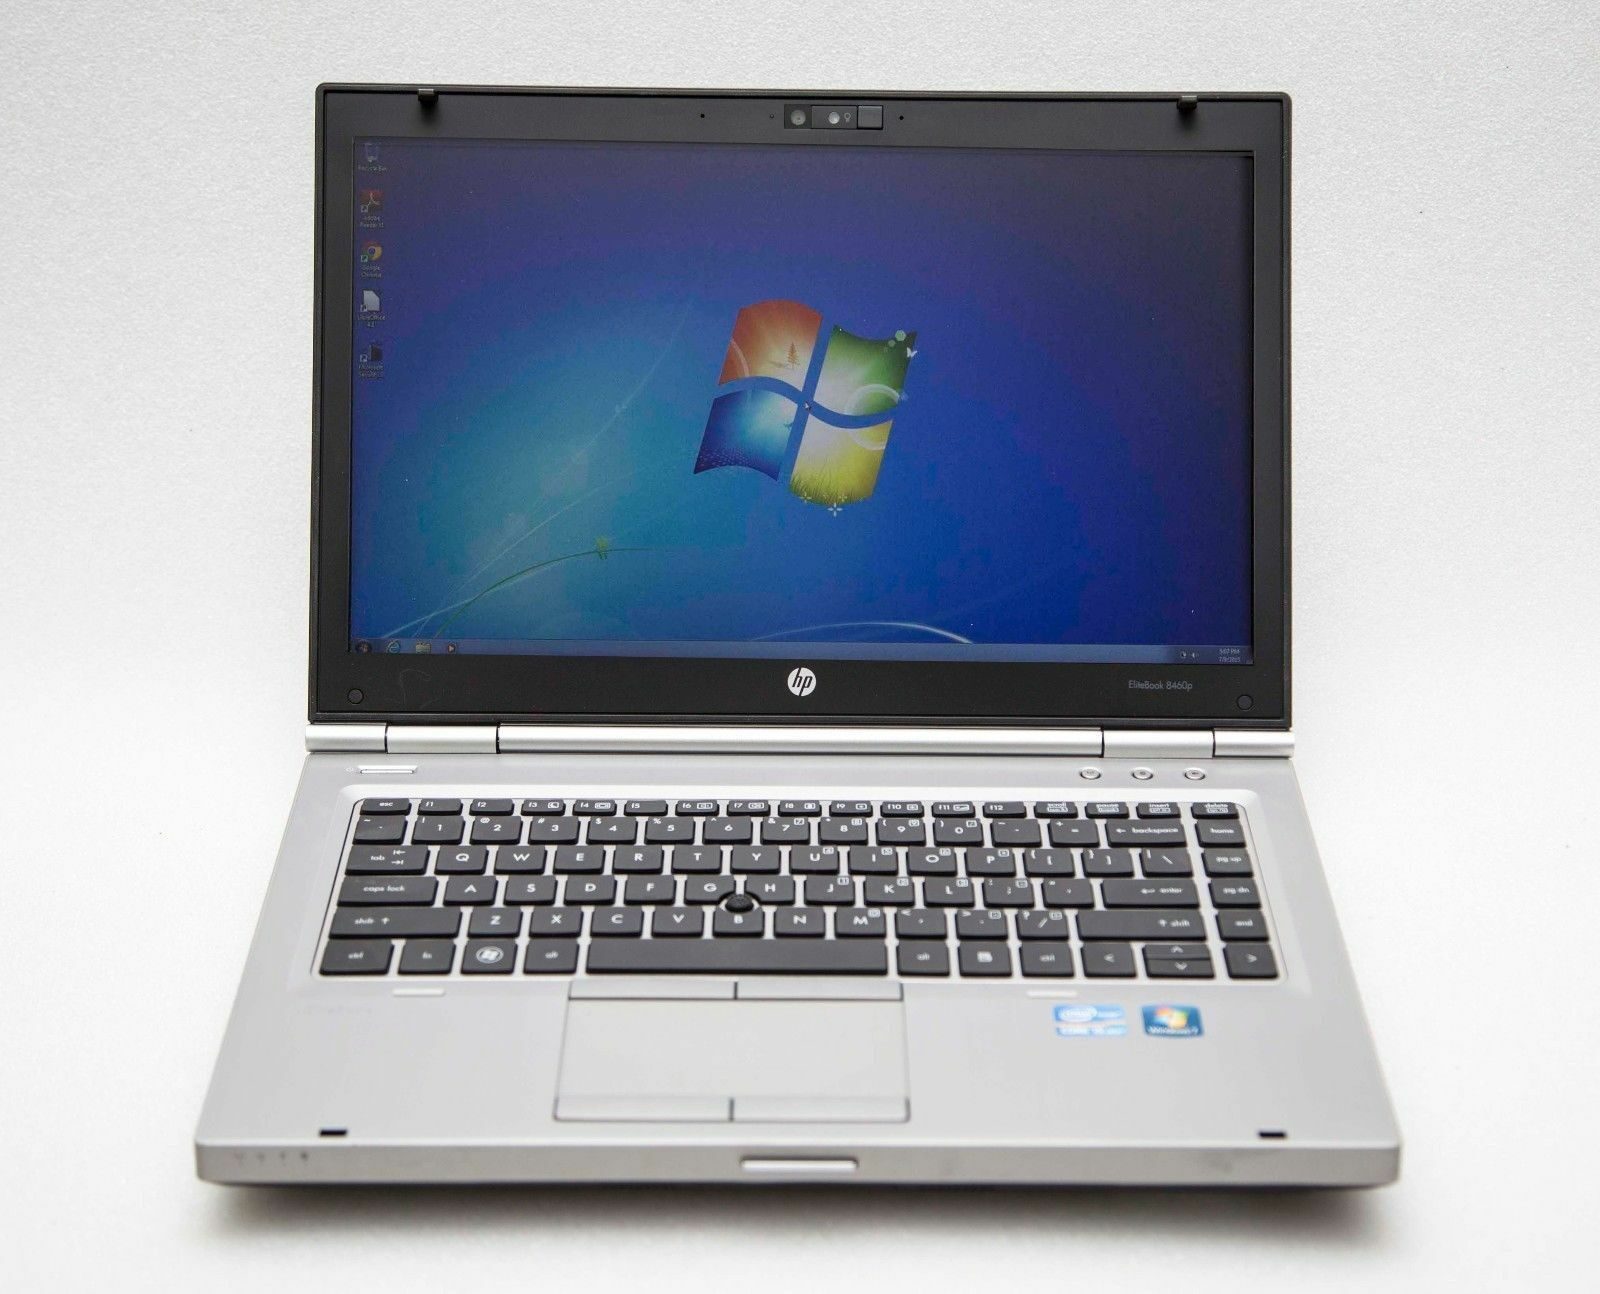 Hp Elitebook 8460p Hp Elitebook 8460p Intel Core I5 2nd Gen 2 60ghz 320gb 4gb